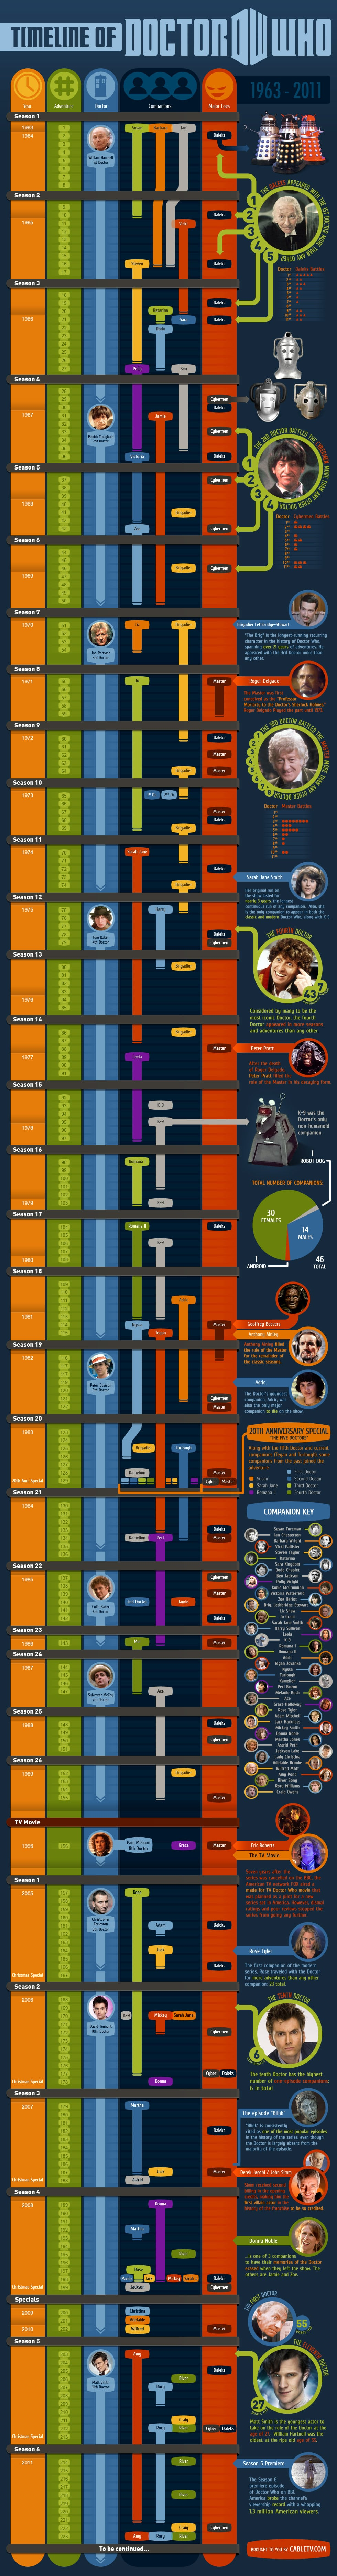 Doctor Who Complete Timeline Infographic